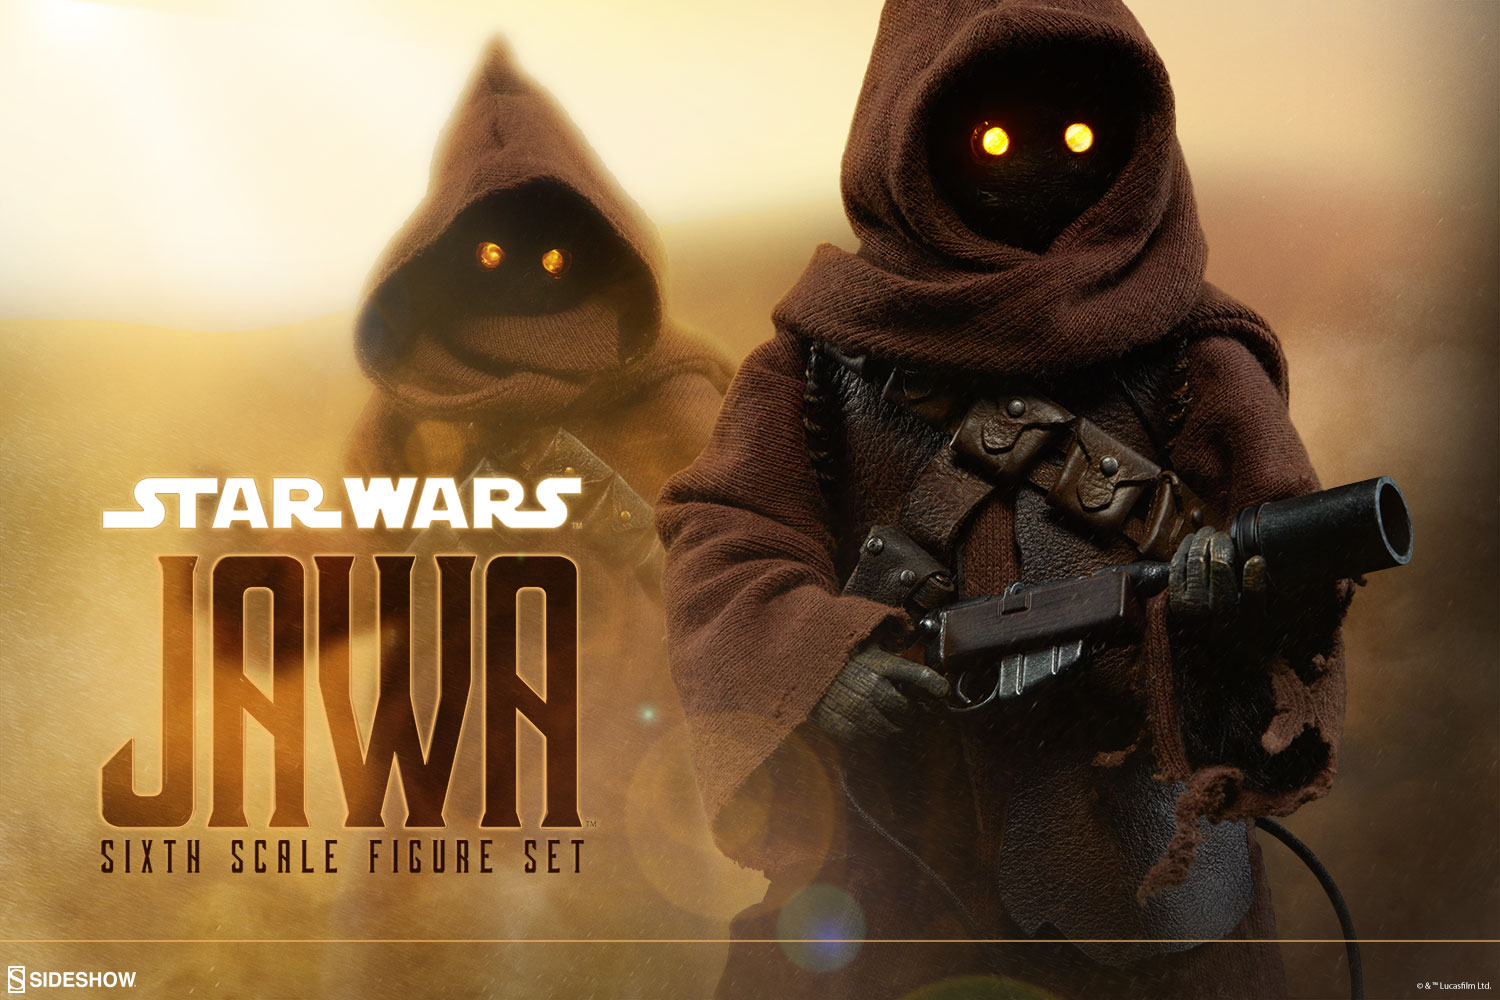 Los Vengadores Wallpapers as well ics Wallpaper also Star Wars Jawa Sideshow Collectibles 100122 likewise imgworlds additionally Marvel Phase 4 Slate Imagined Fan Graphic. on marvel avengers